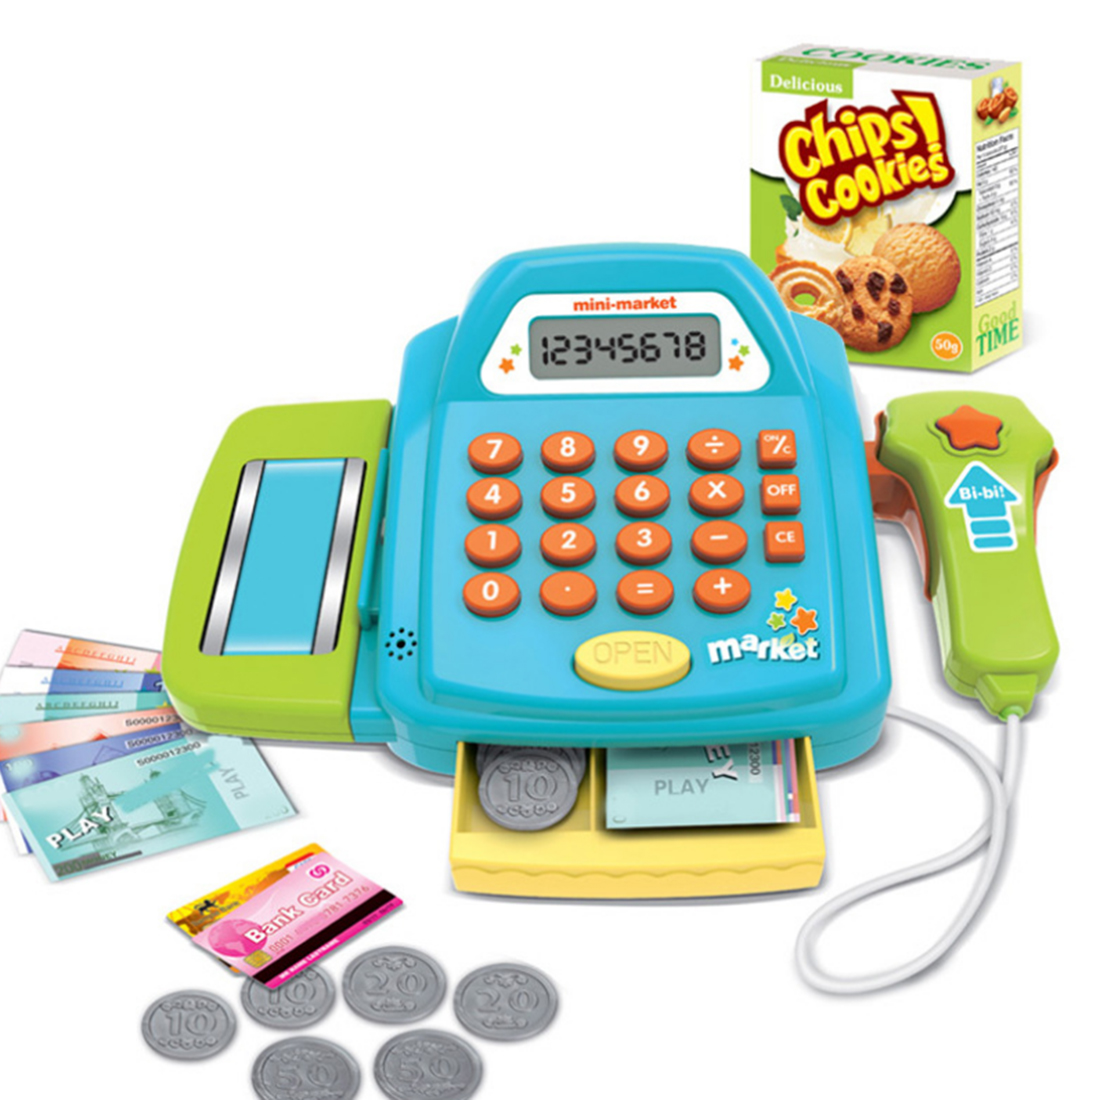 Funny Pretend Play Furniture Toy Set Cash Register Cashier Children Kids Early Educational Toys For Boys Girls - Pink Blue